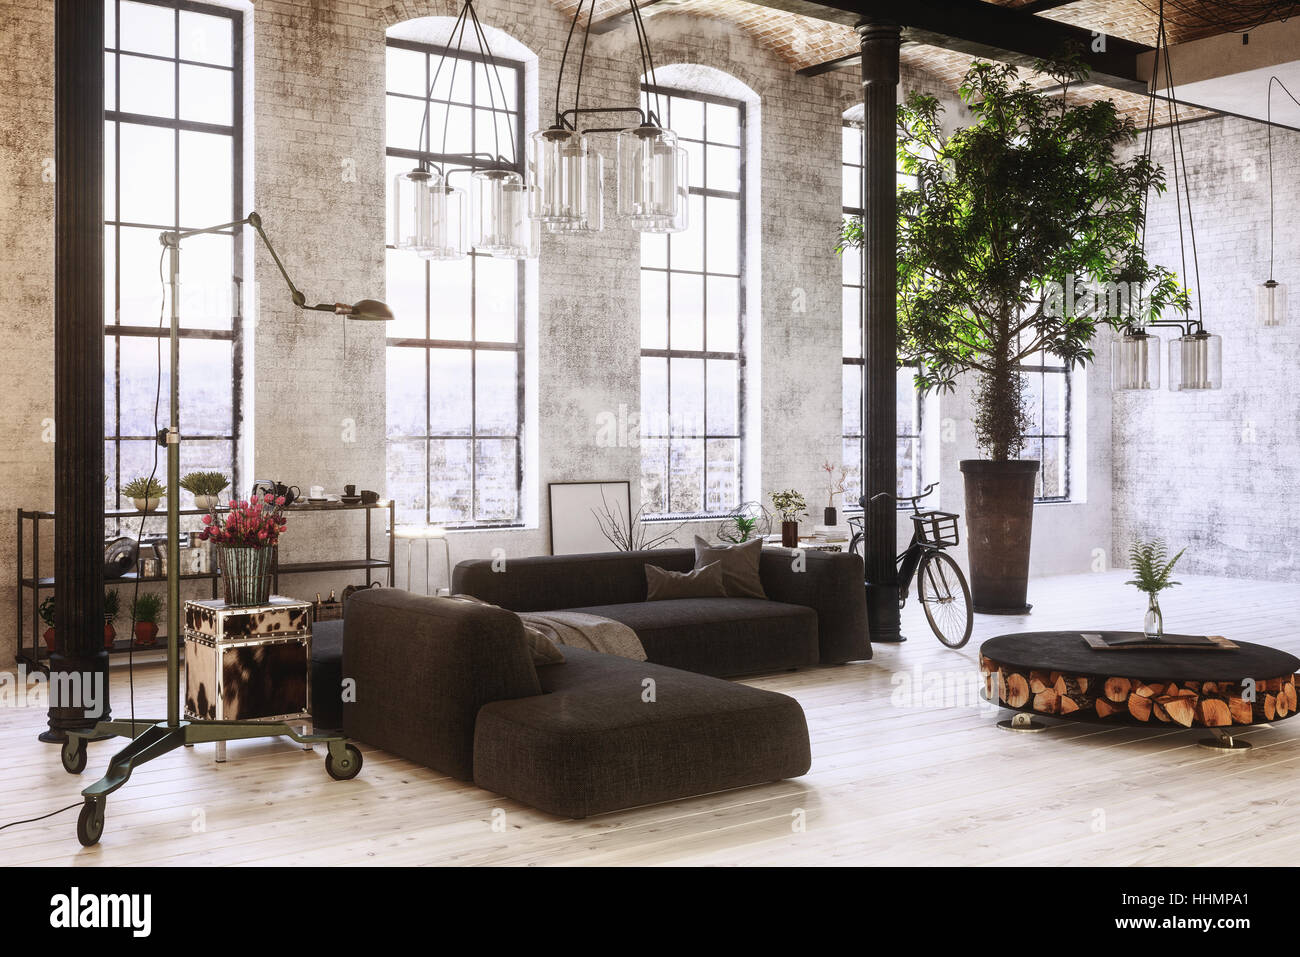 Large spacious converted industrial loft interior with tall arched ...